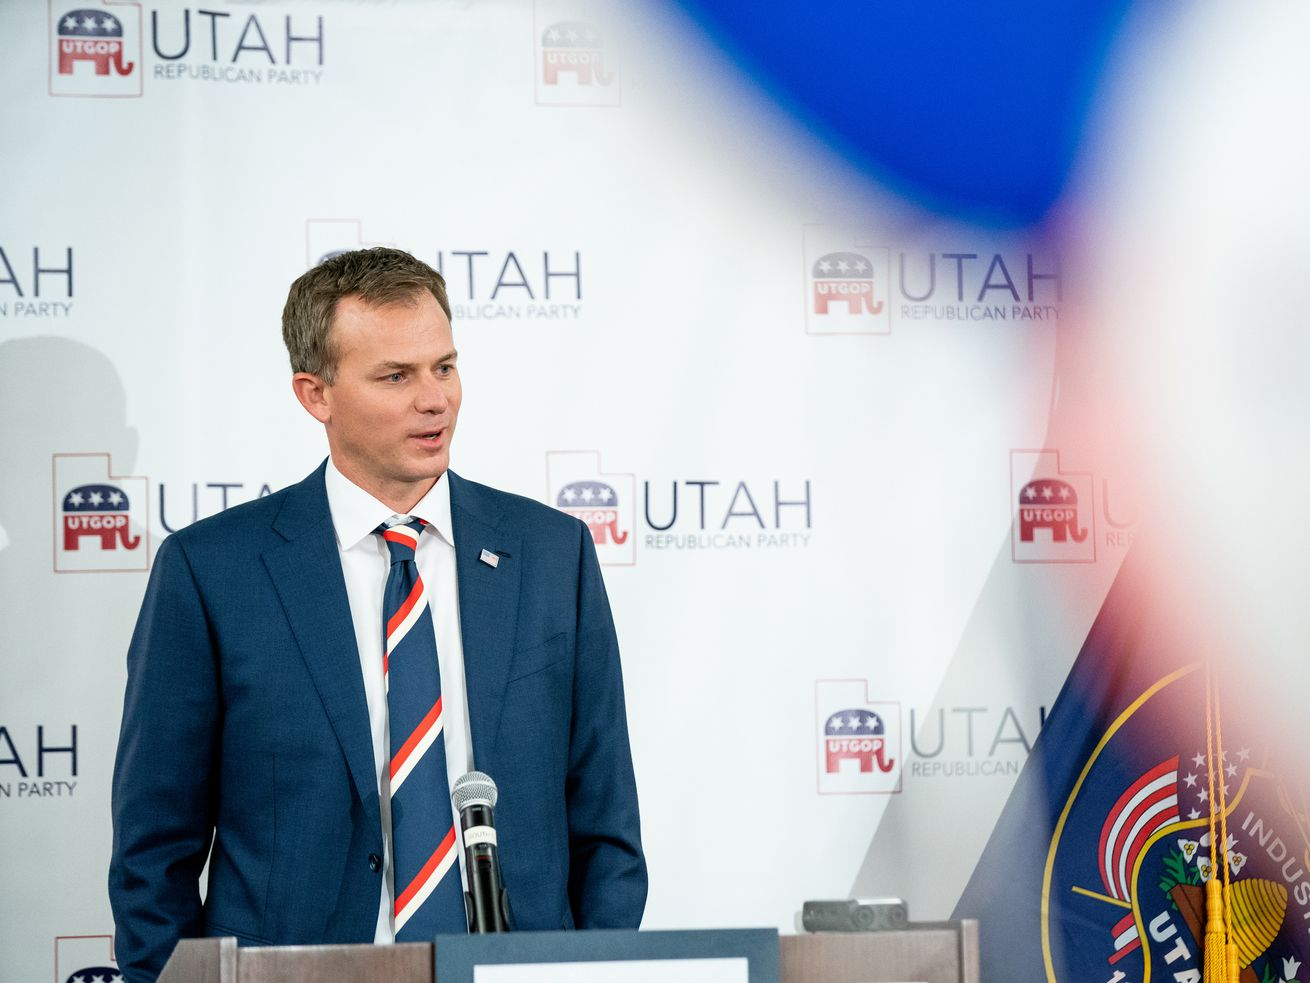 Blake Moore, Republican candidate for Utah's 1st Congressional District, speaks at an election night event for Republican candidates in at the Utah Association of Realtors building in Sandy on Tuesday, Nov. 3, 2020. Moore's opponent conceded the race Tuesday